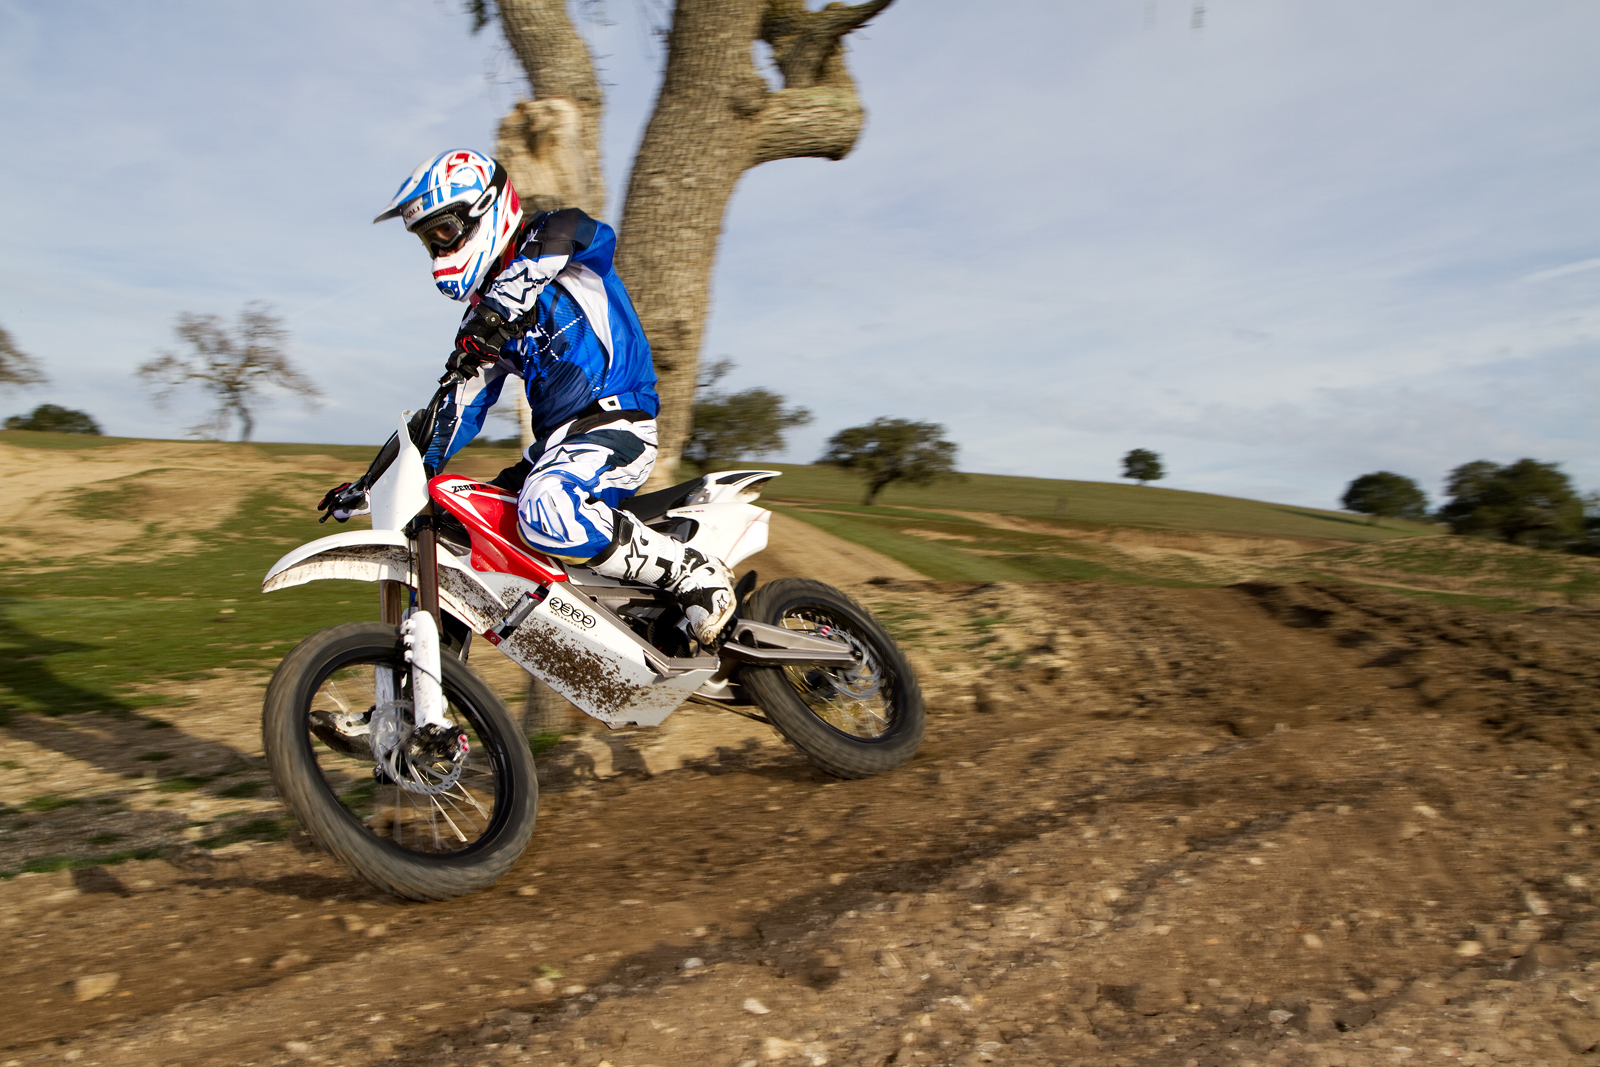 '.2010 Zero MX Electric Motorcycle: Zaca Station - Cruising.'